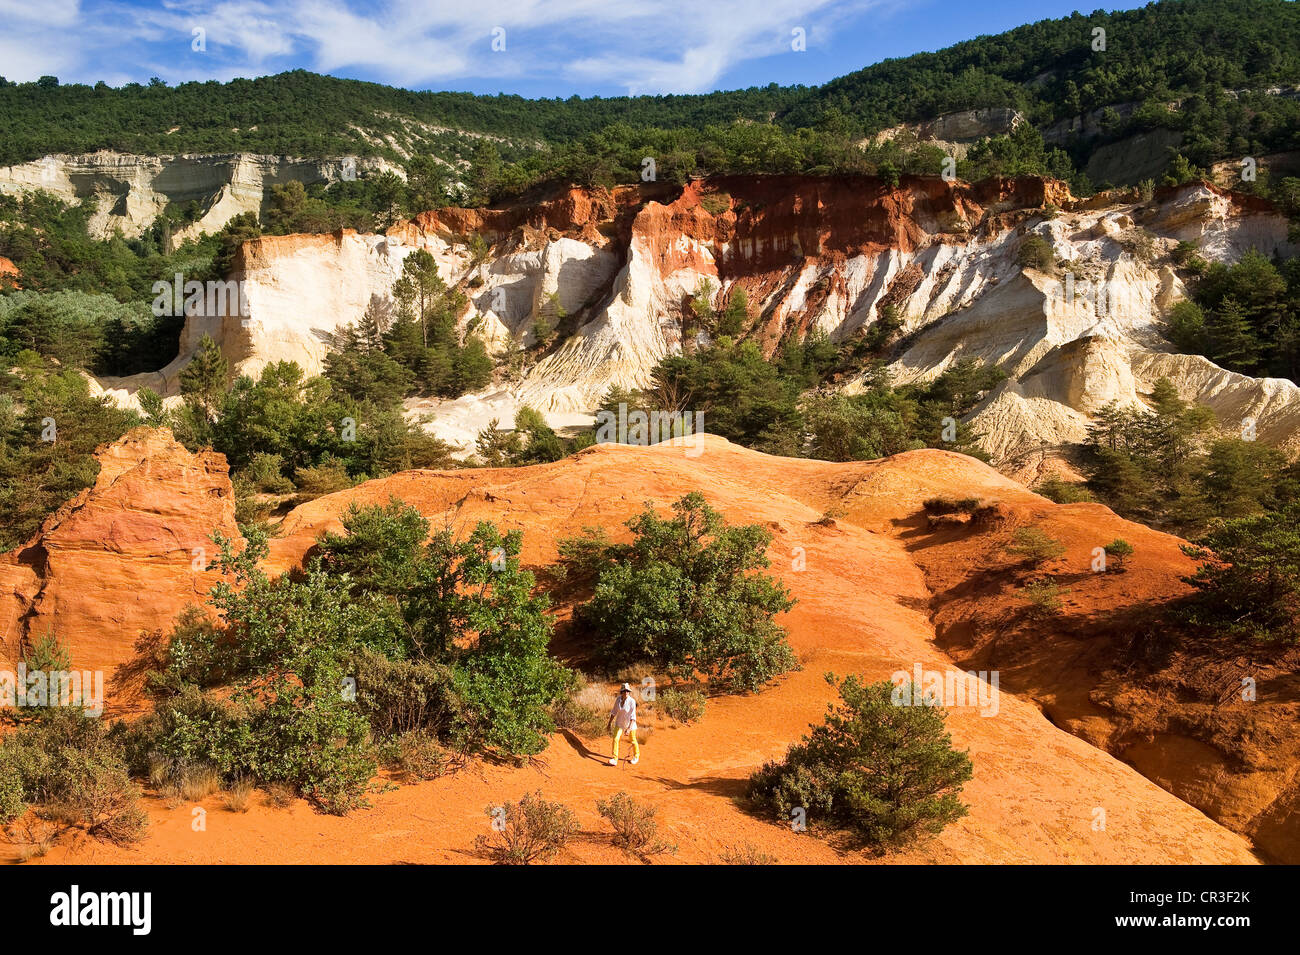 France, Vaucluse, Luberon, Rustrel, Provencal Colorado, hiker in the walk of a park - Stock Image